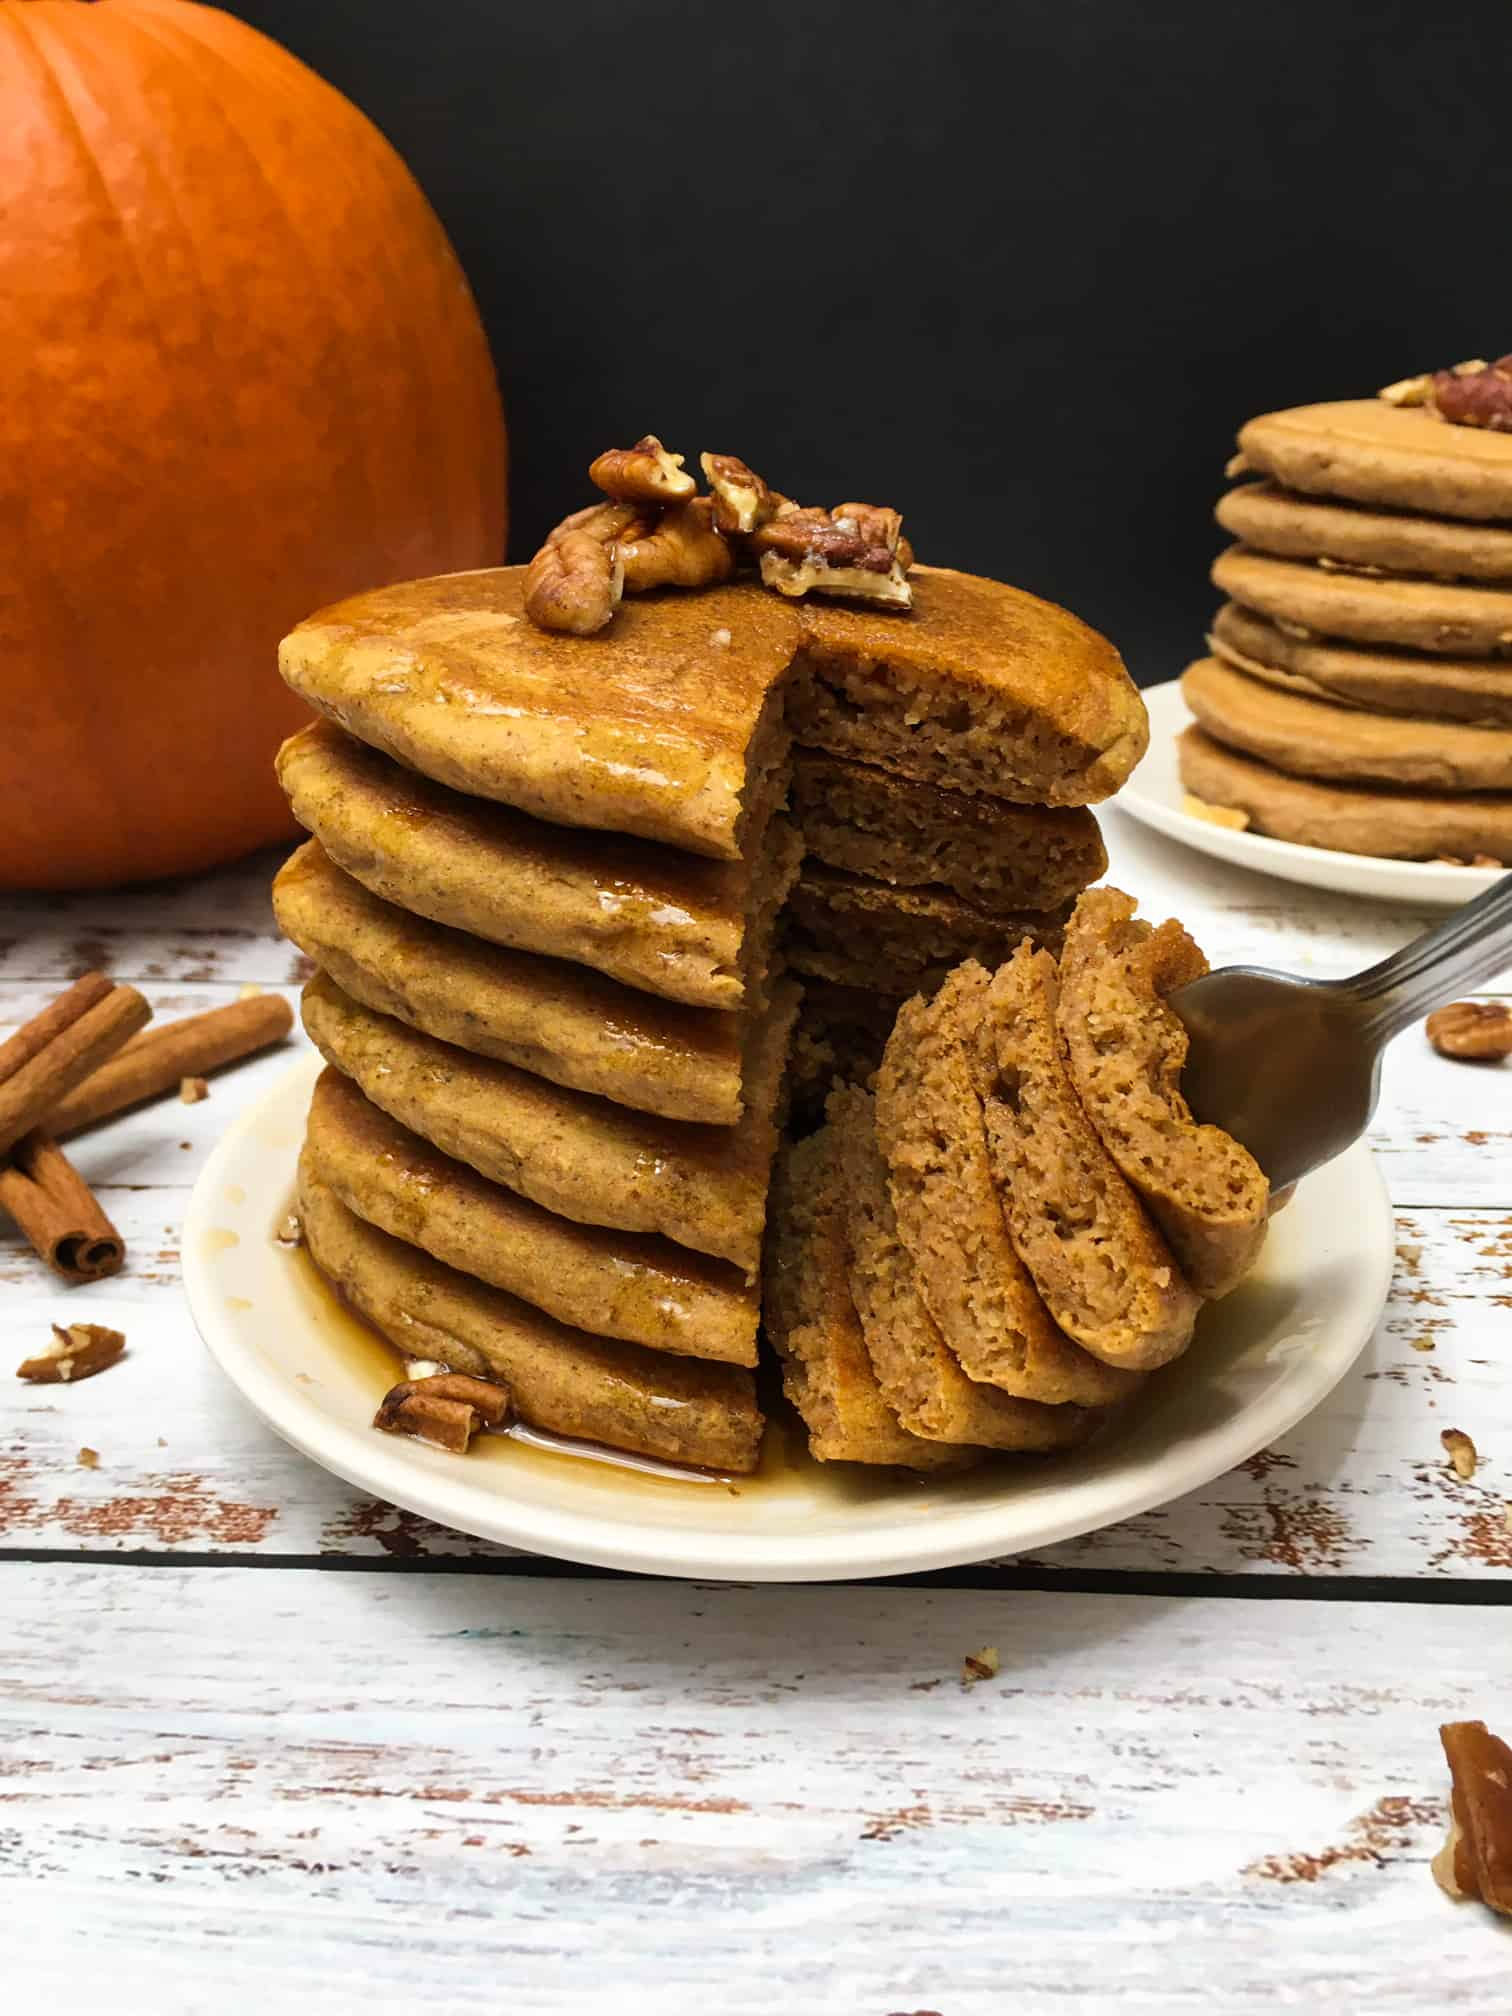 fork cutting through stack of pumpkin spice pancakes.